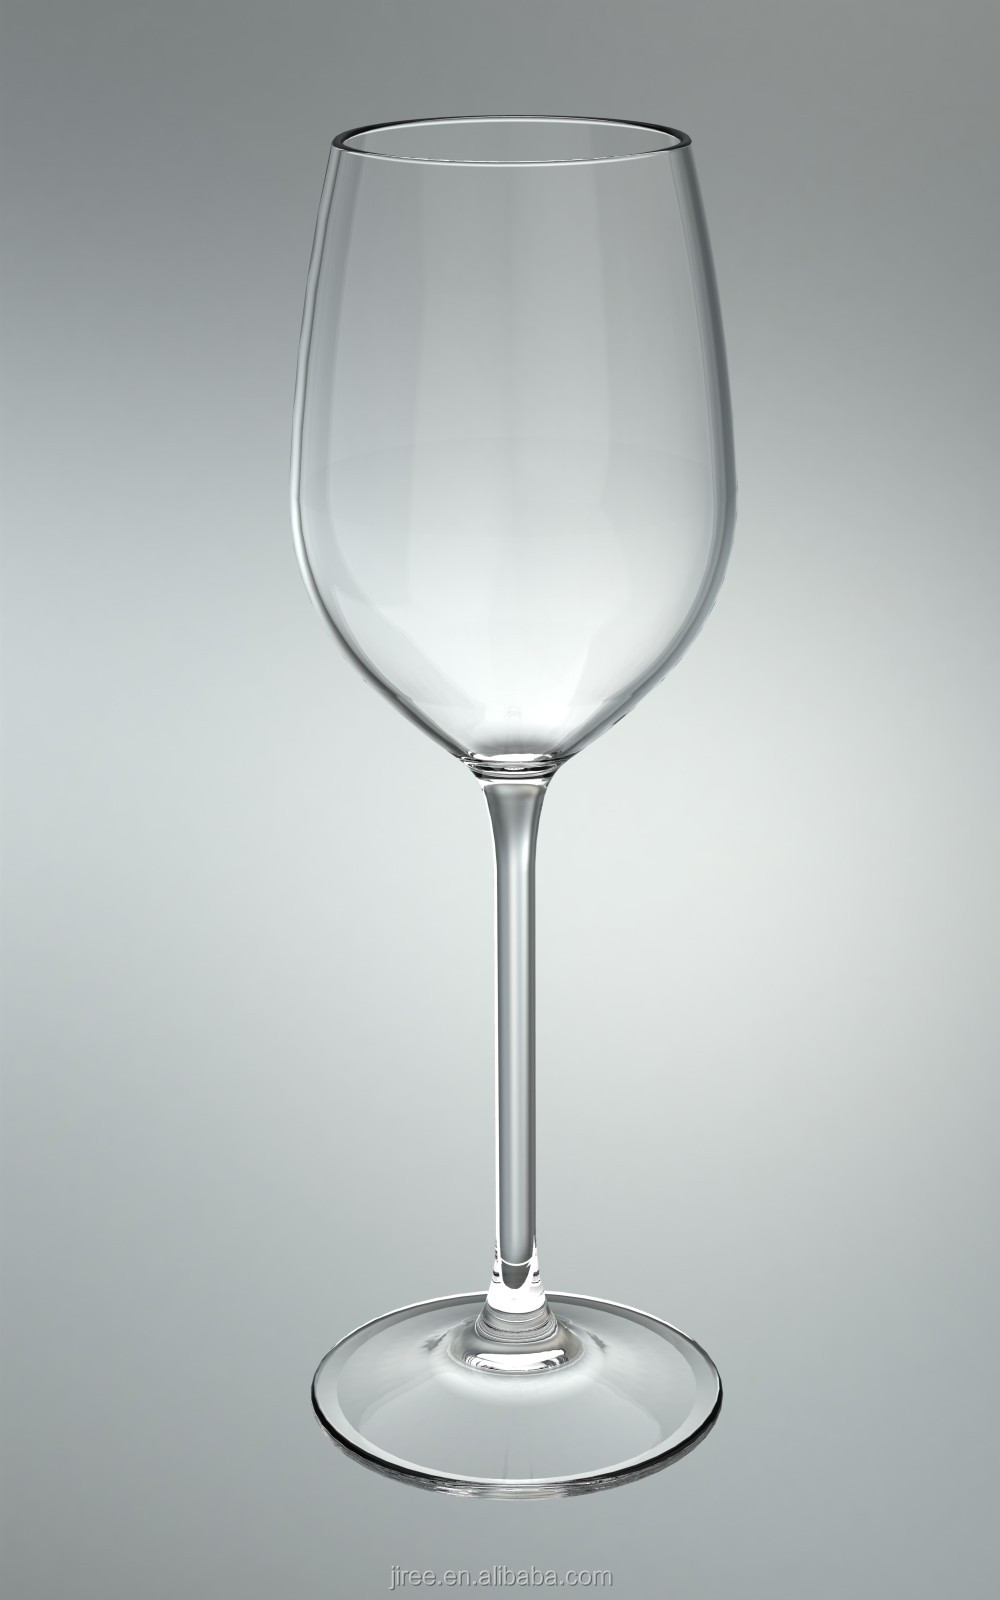 Wholesale transparent plastic wine glass with thin stem Large wine glasses cheap